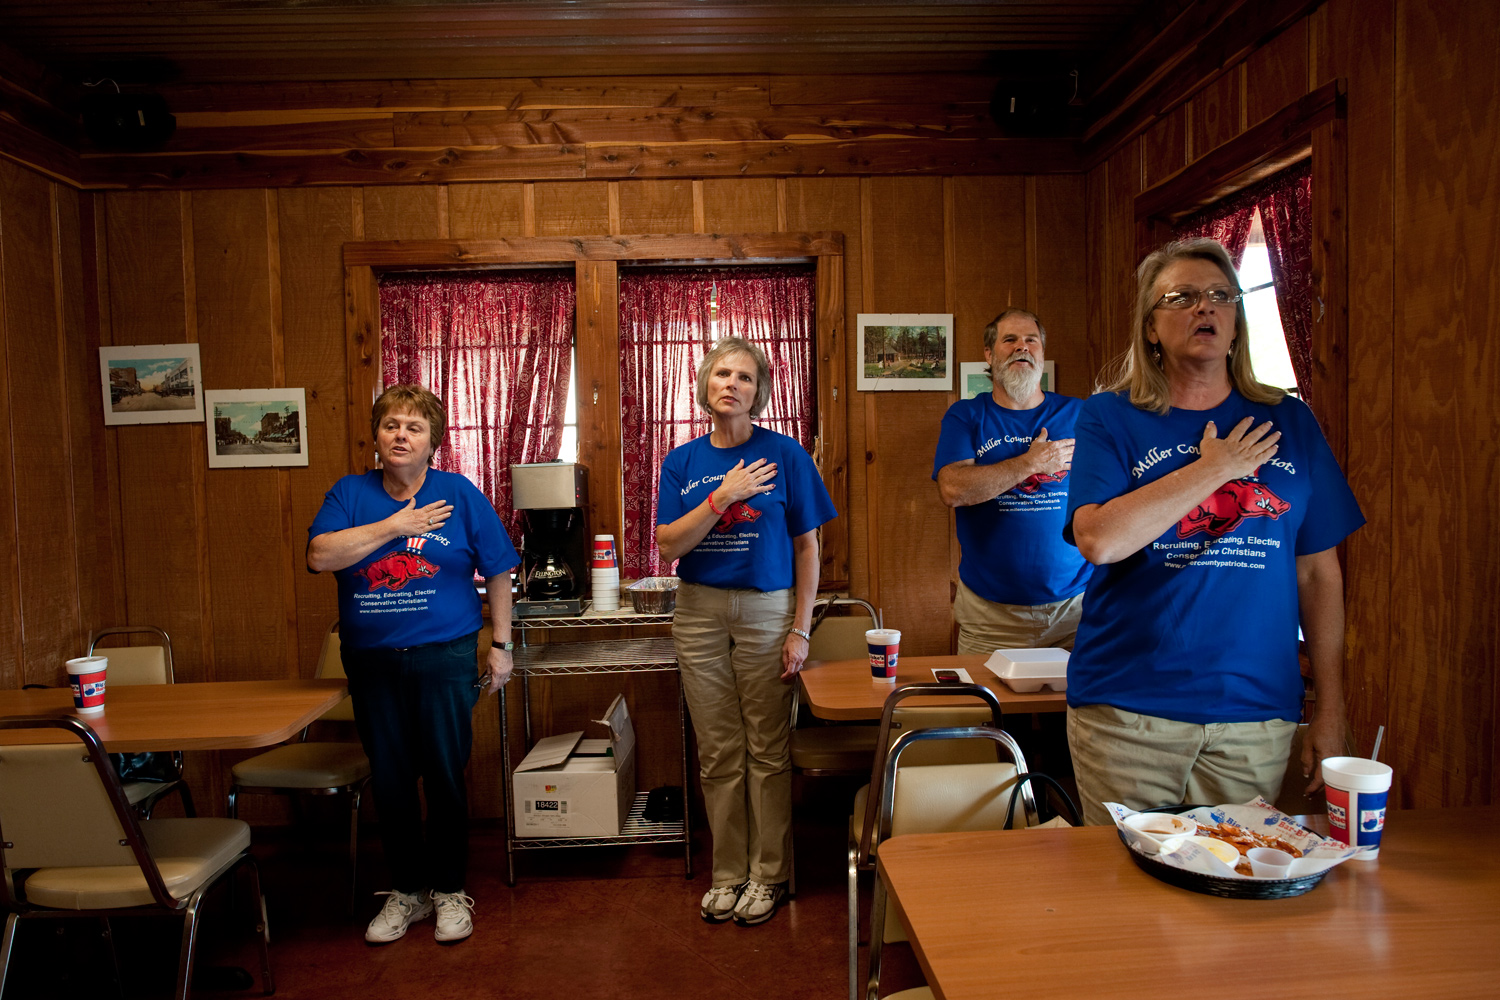 September 20, 2011. From left to right: Sue O'neal, 65, Texarkana, Mary Anne Green, 54, Wayne green, 59, all members of The Patriot Party, an offshoot of the Tea Party, bow their heads in prayer before a meeting at Big Jakes BBQ in Texarkana, Arkansas.